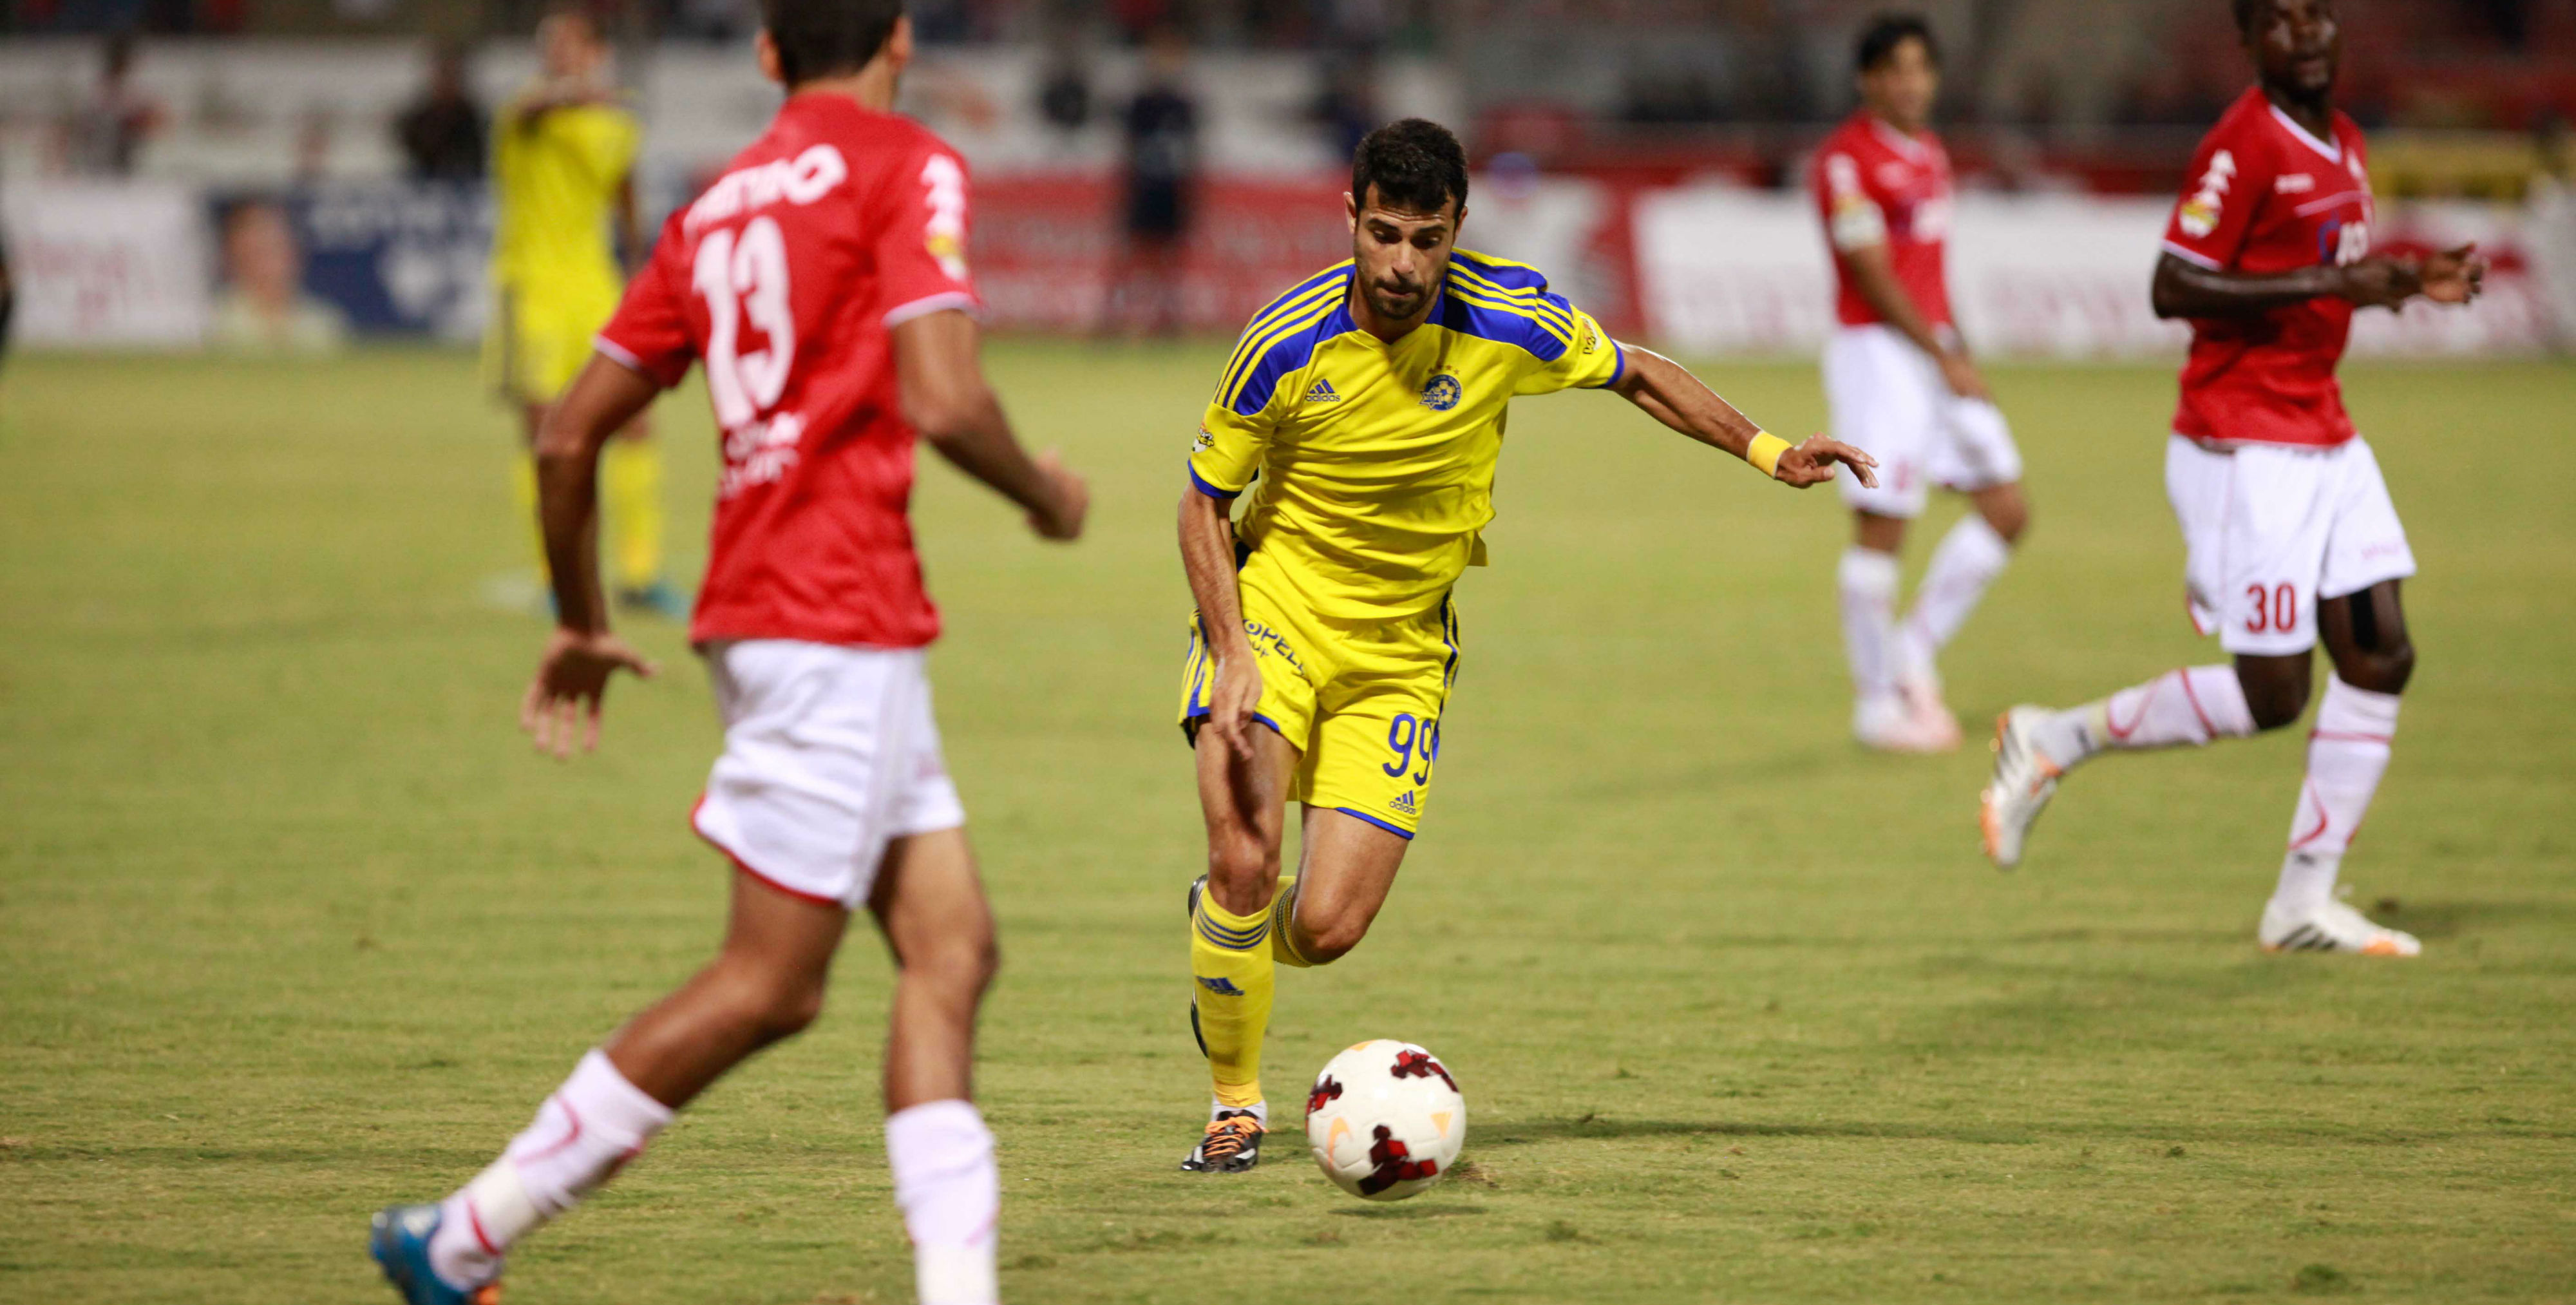 Eden Ben Basat in action-Courtesy Maccabi Tel Aviv  Website